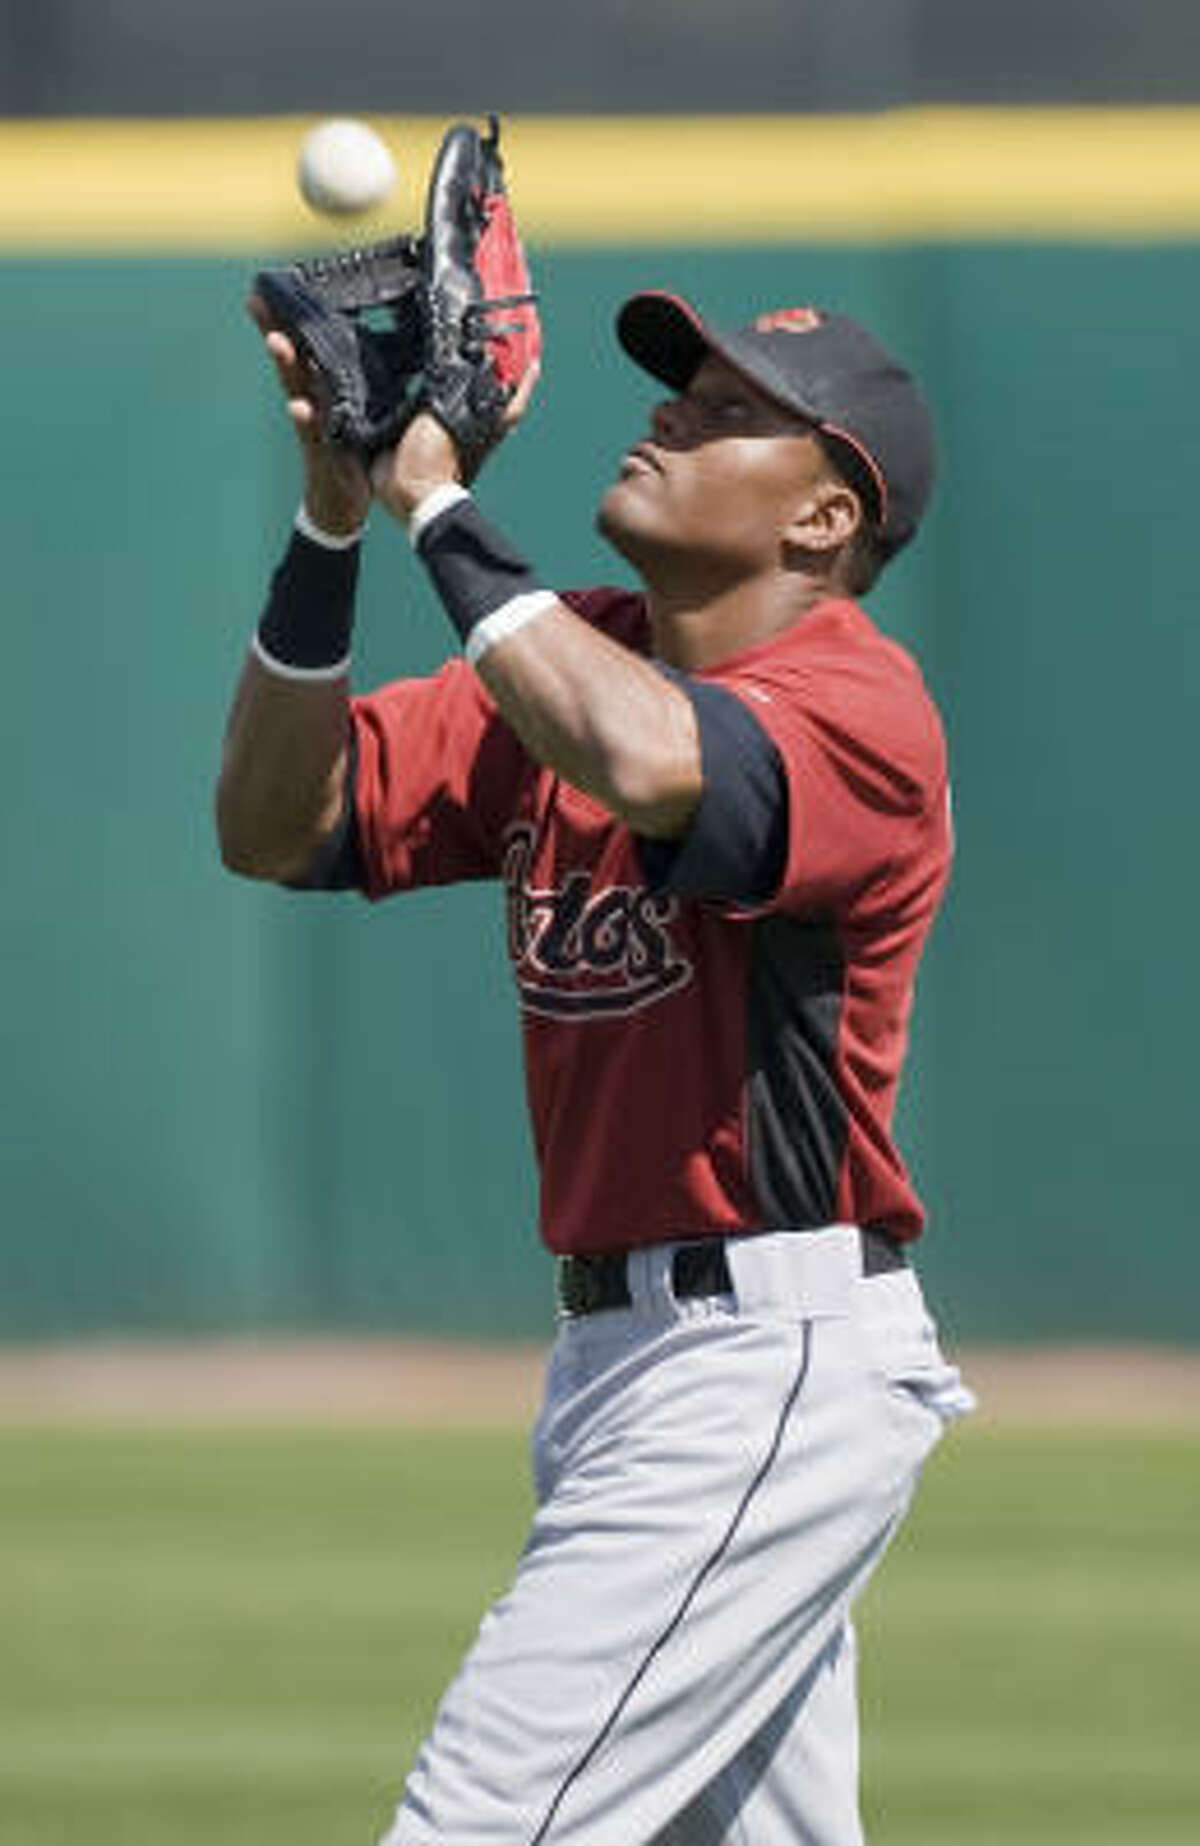 Yordany Ramirez catches a fly ball in an intra-squad game.